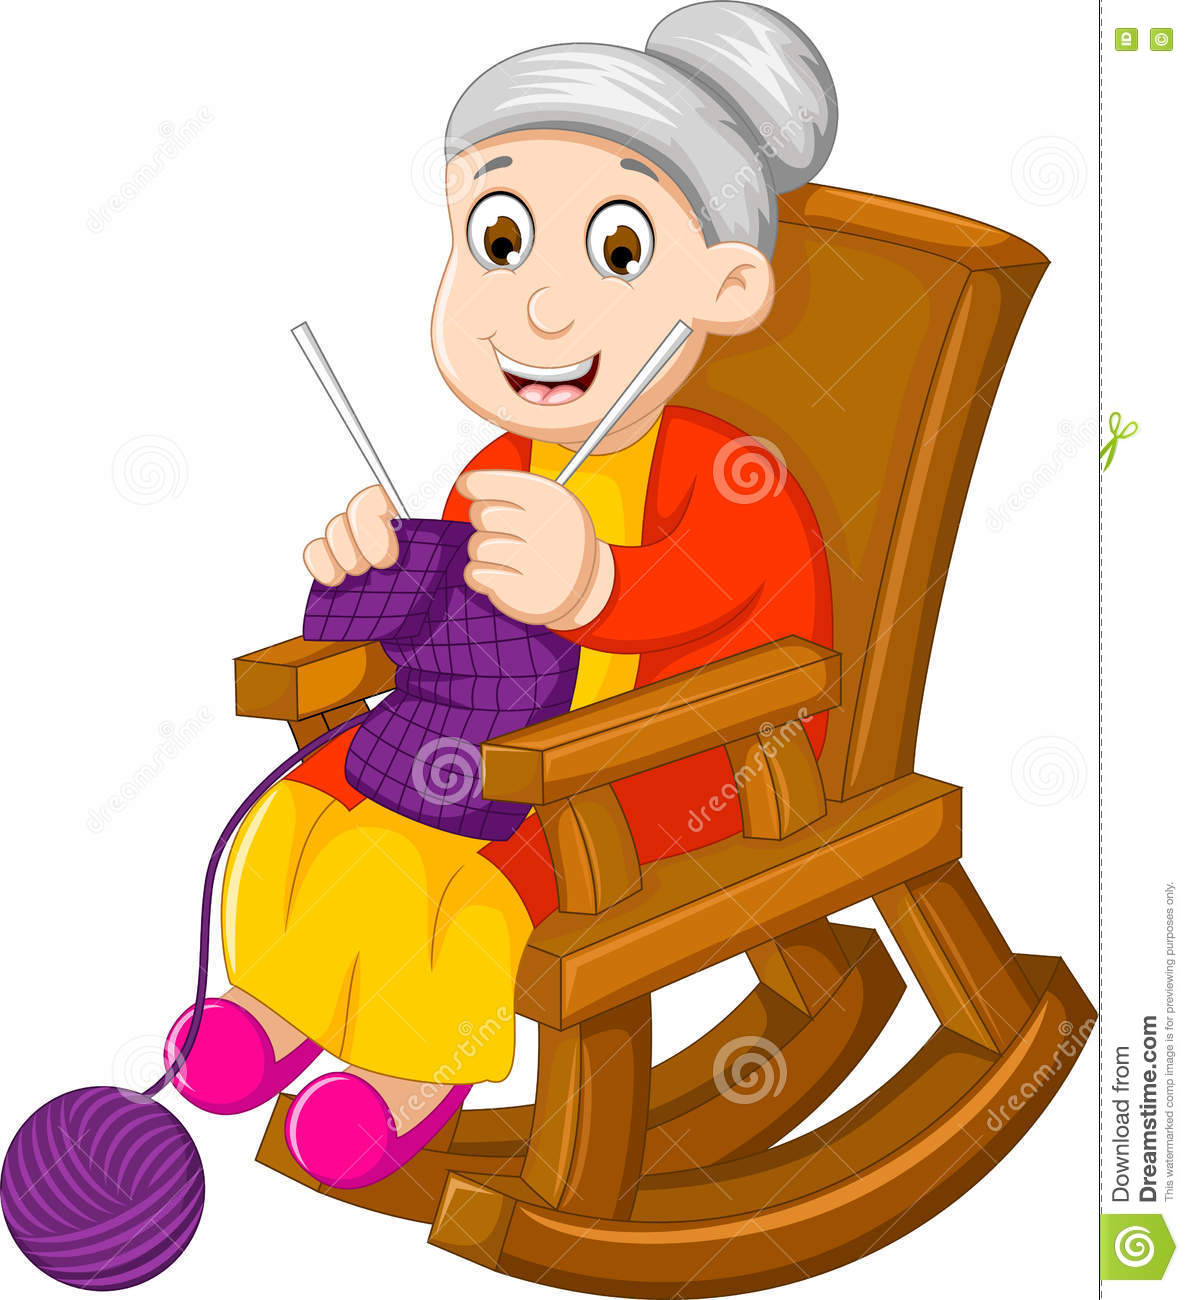 Knitting Granny Clipart : Funny grandmother cartoon knitting in a rocking chair